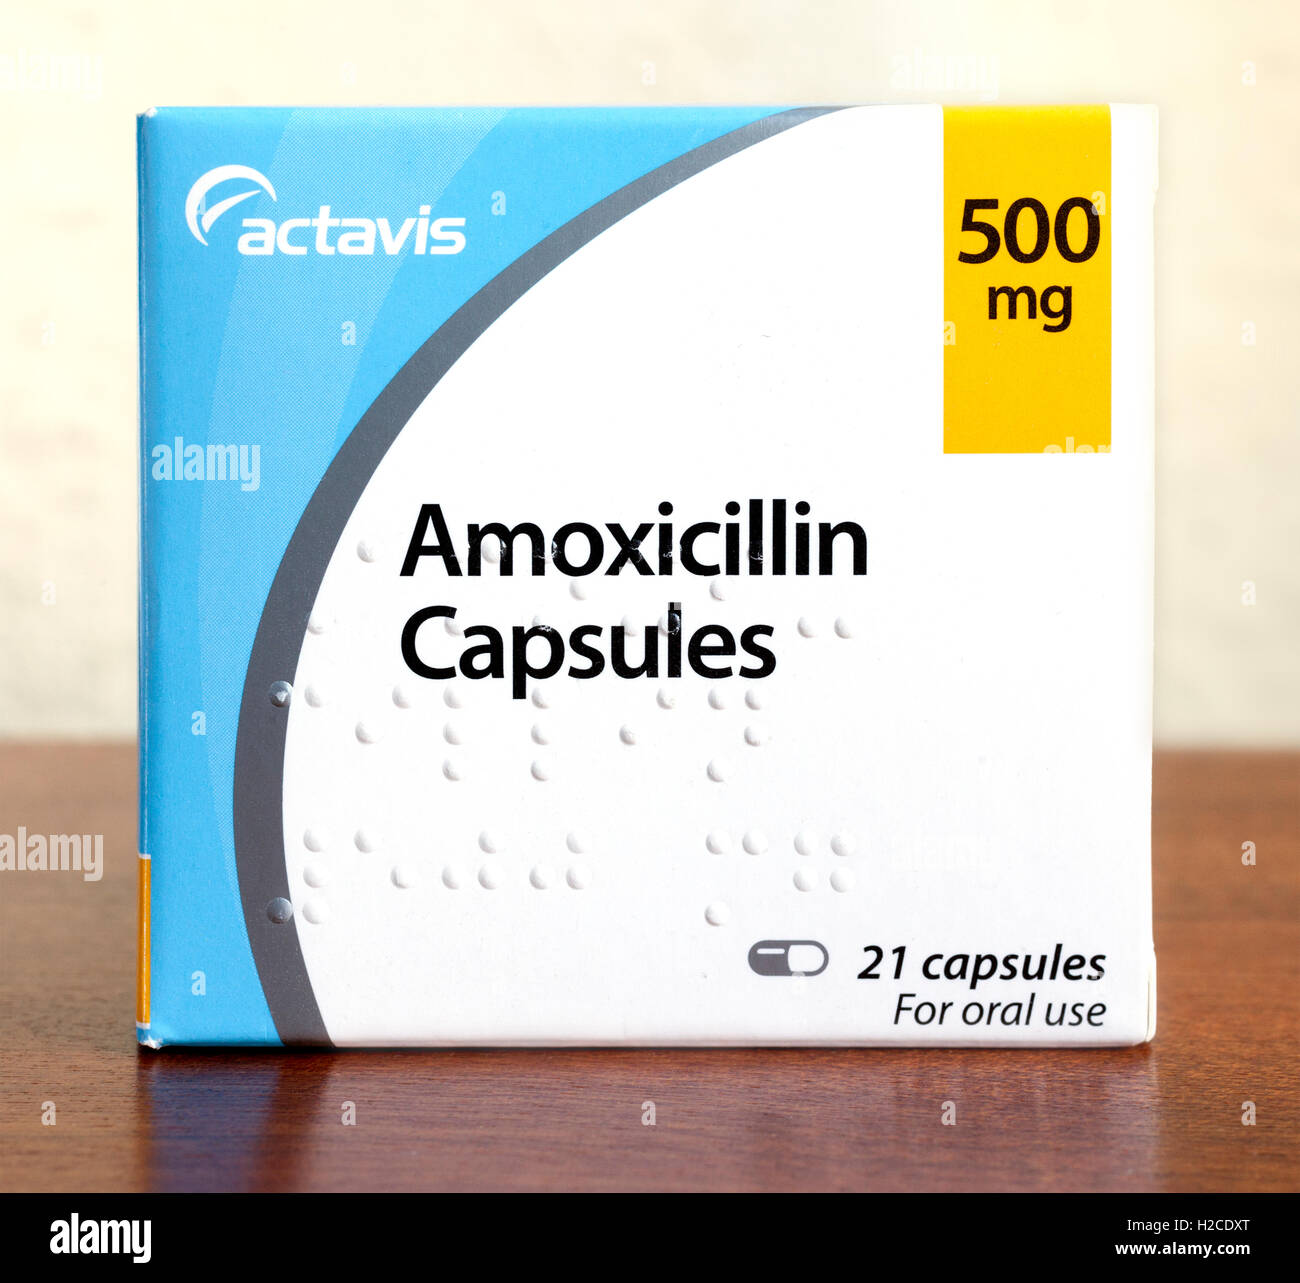 Box of Amoxicillin (penicillin antibiotic) capsules produced by Actavis. Braille is impressed on the front of the - Stock Image